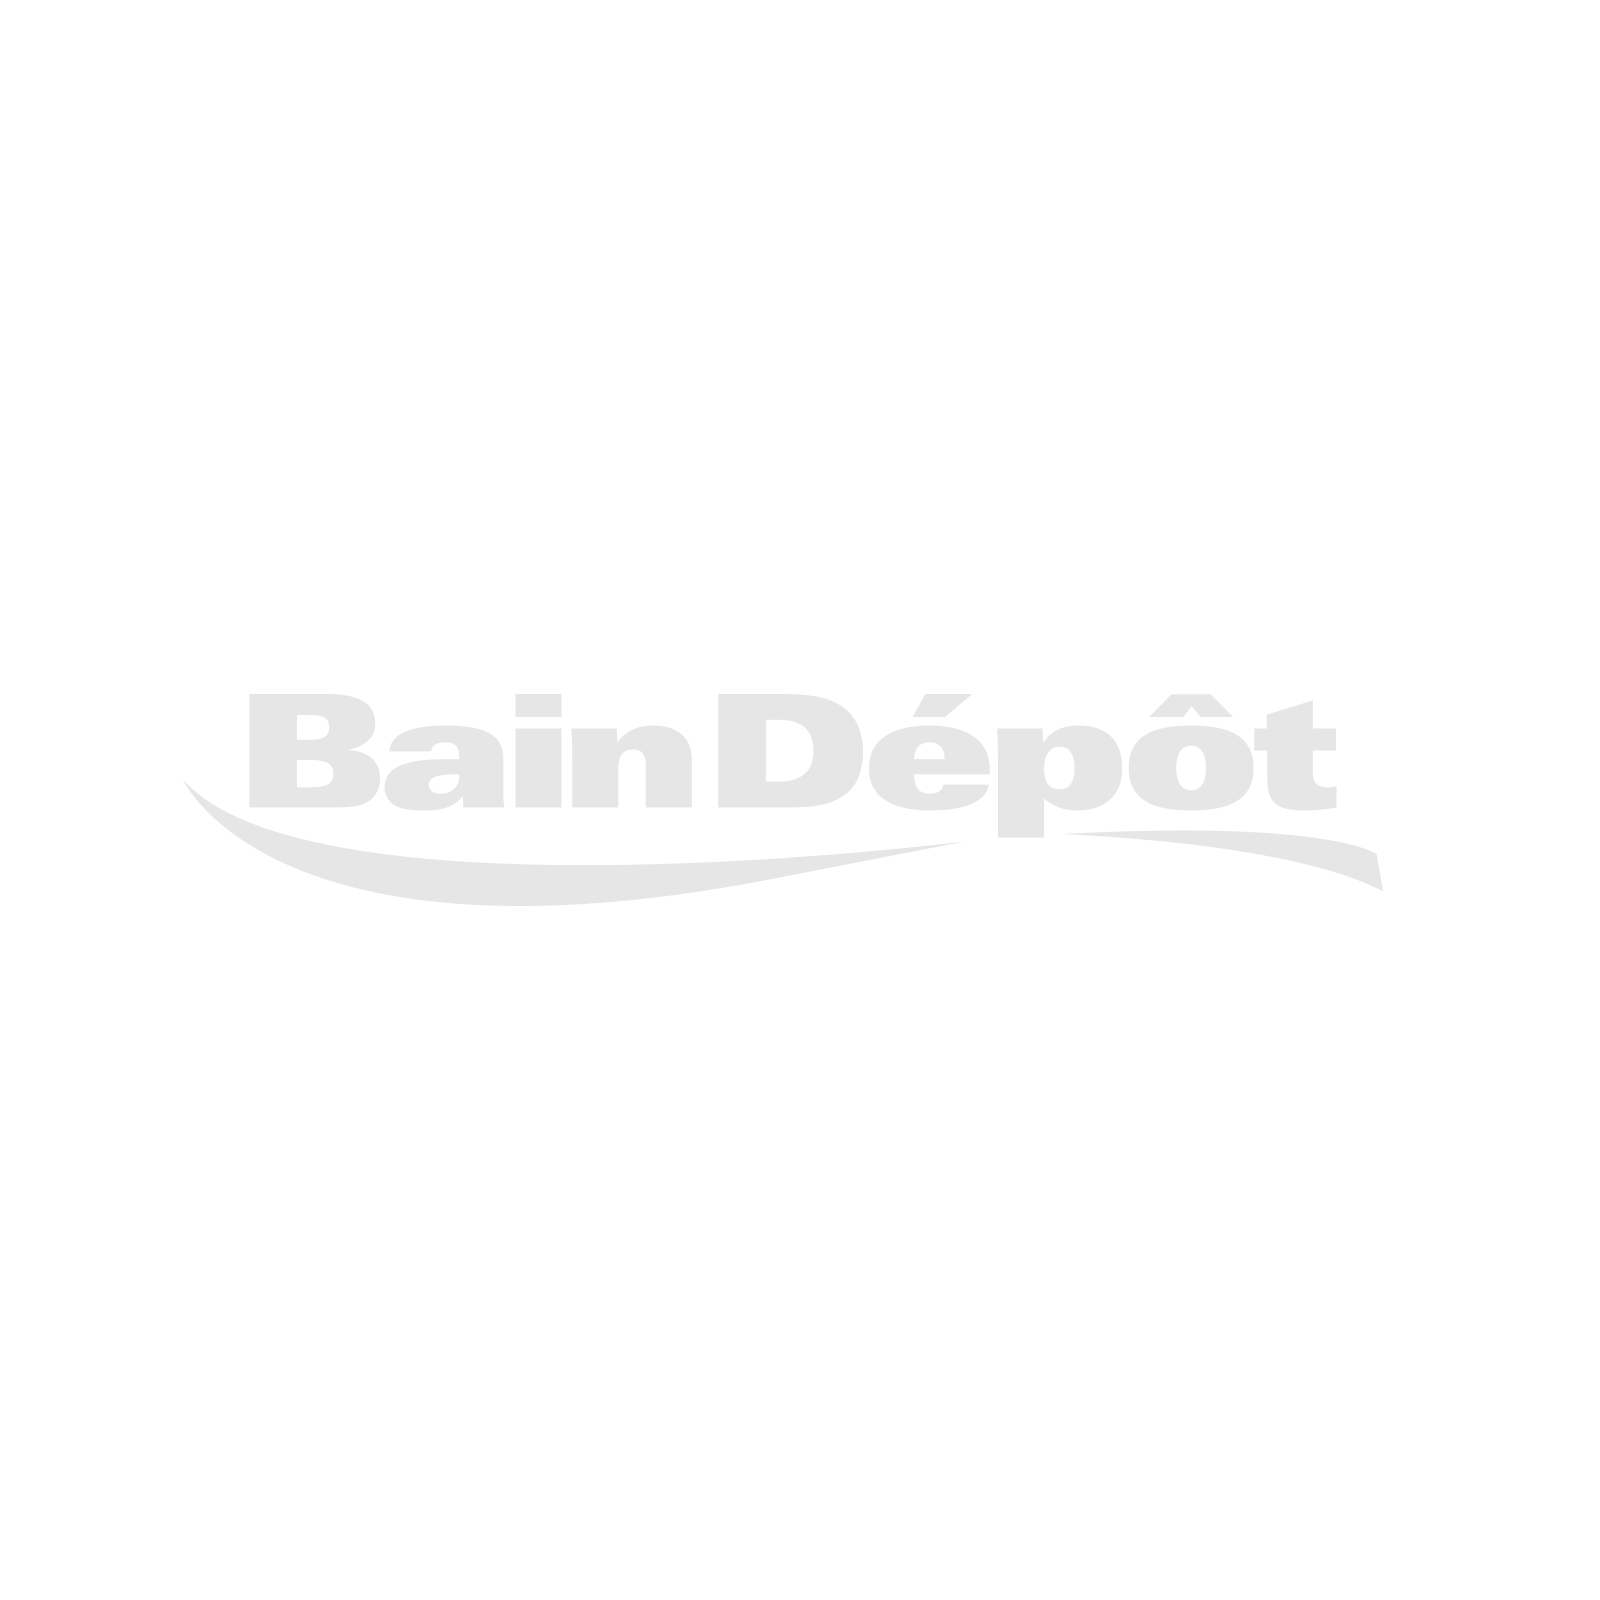 "Complete 36"" x 36"" round shower set with door, base, walls and faucet"